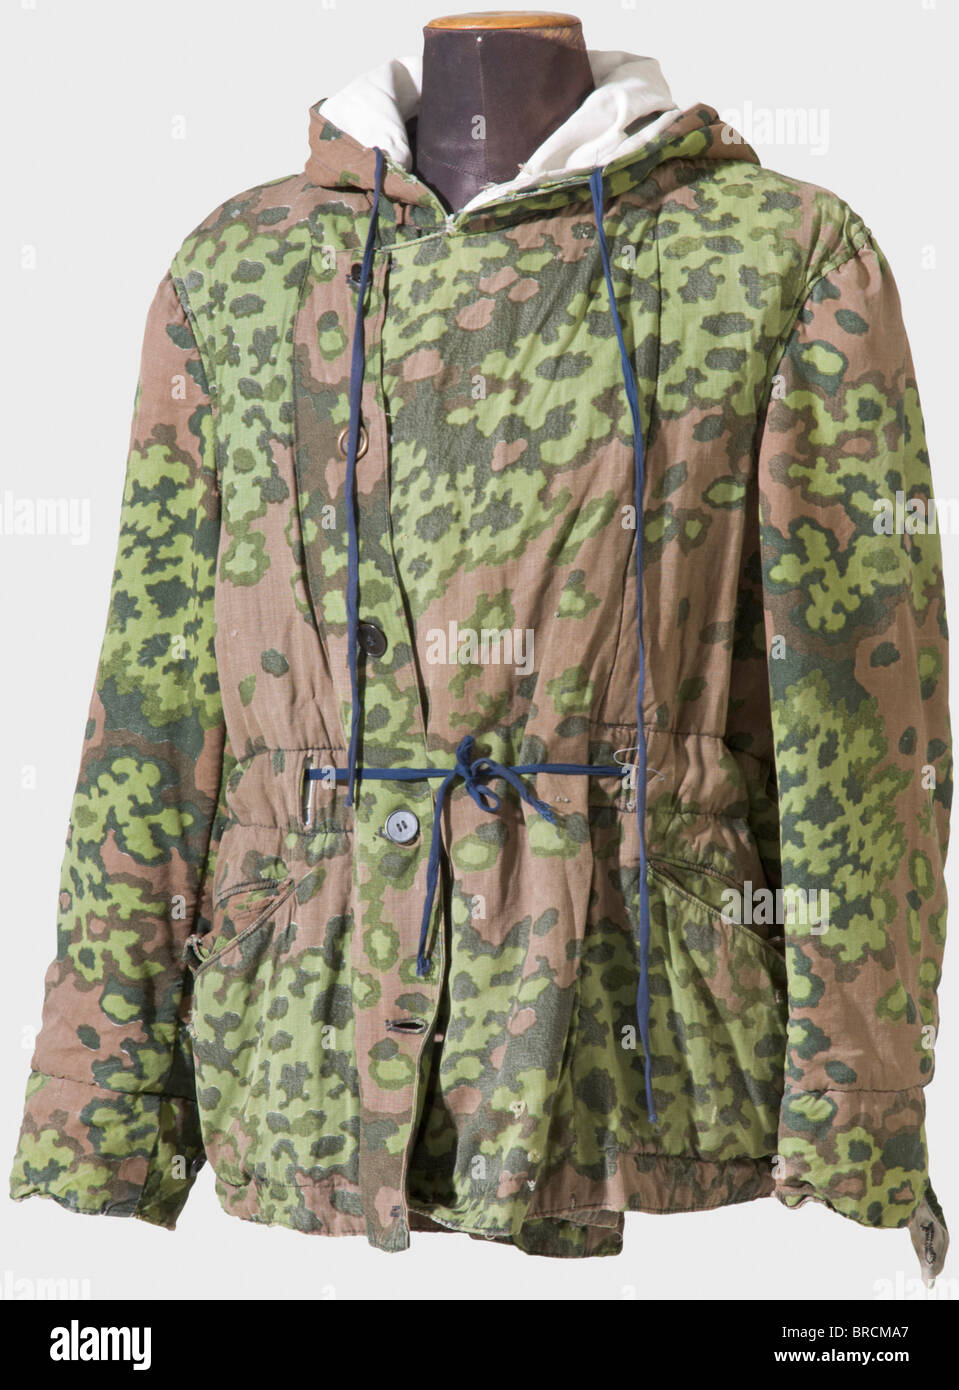 A reversible winter jacket of the Waffen SS, with spring camouflage pattern Thickly lined winter jacket with hood, - Stock Image